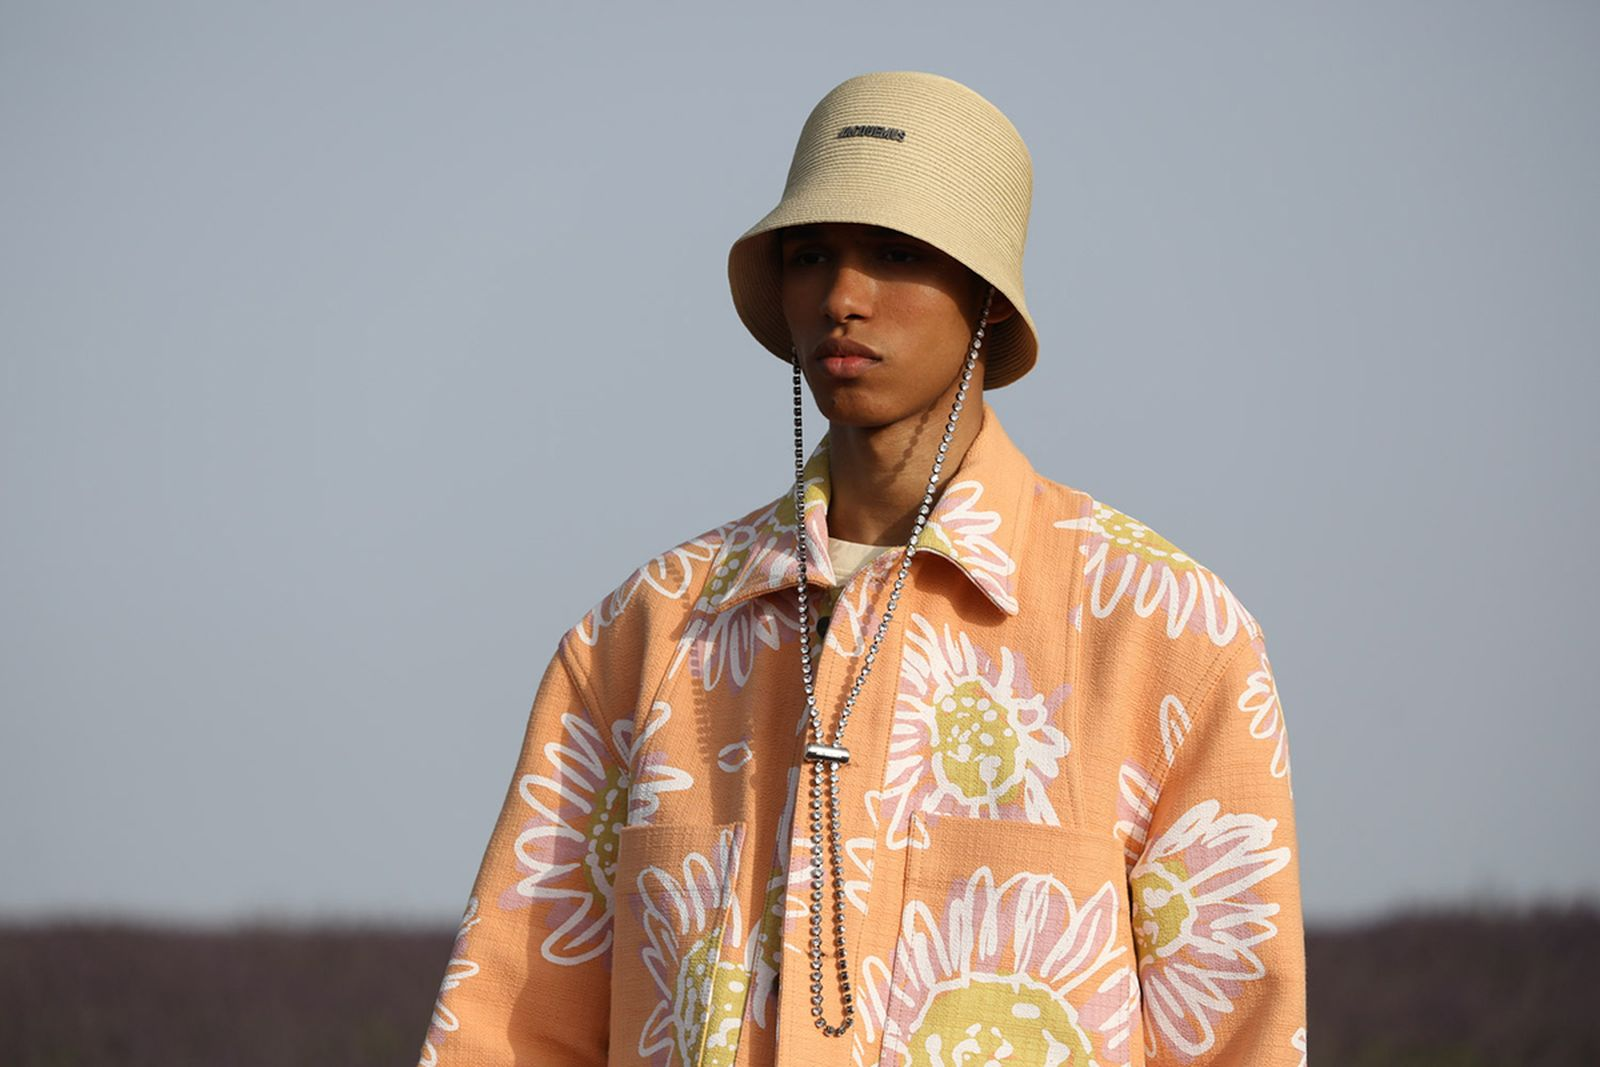 jacquemus ss20 10th anniversary collection 1 runway